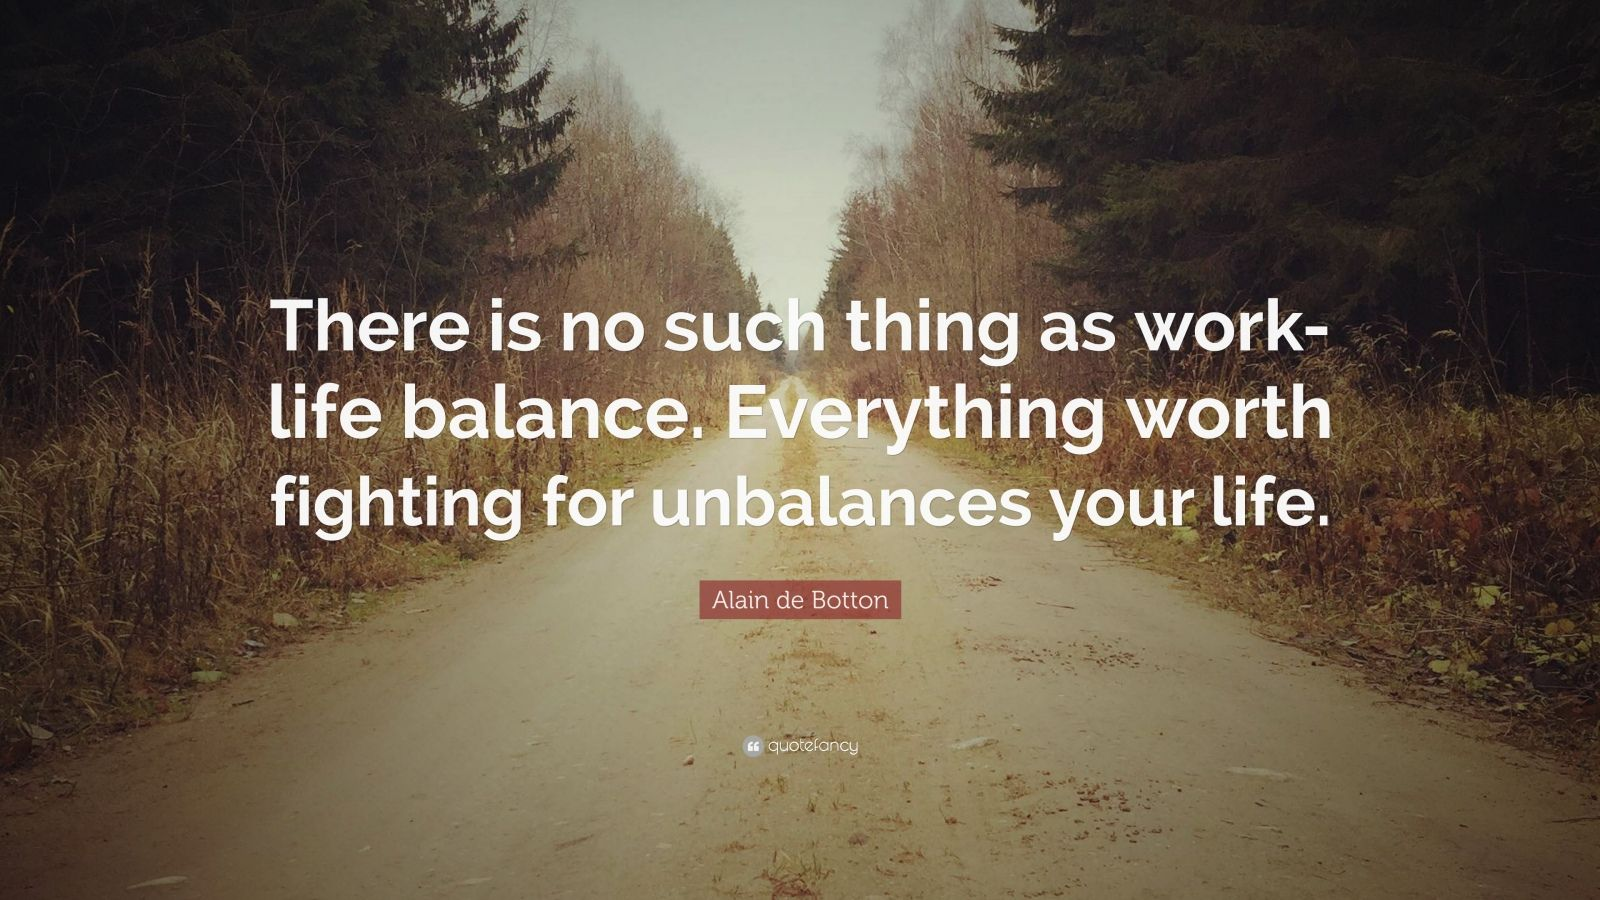 """Alain de Botton Quote: """"There is no such thing as work-life balance. Everything worth fighting for unbalances your life."""""""